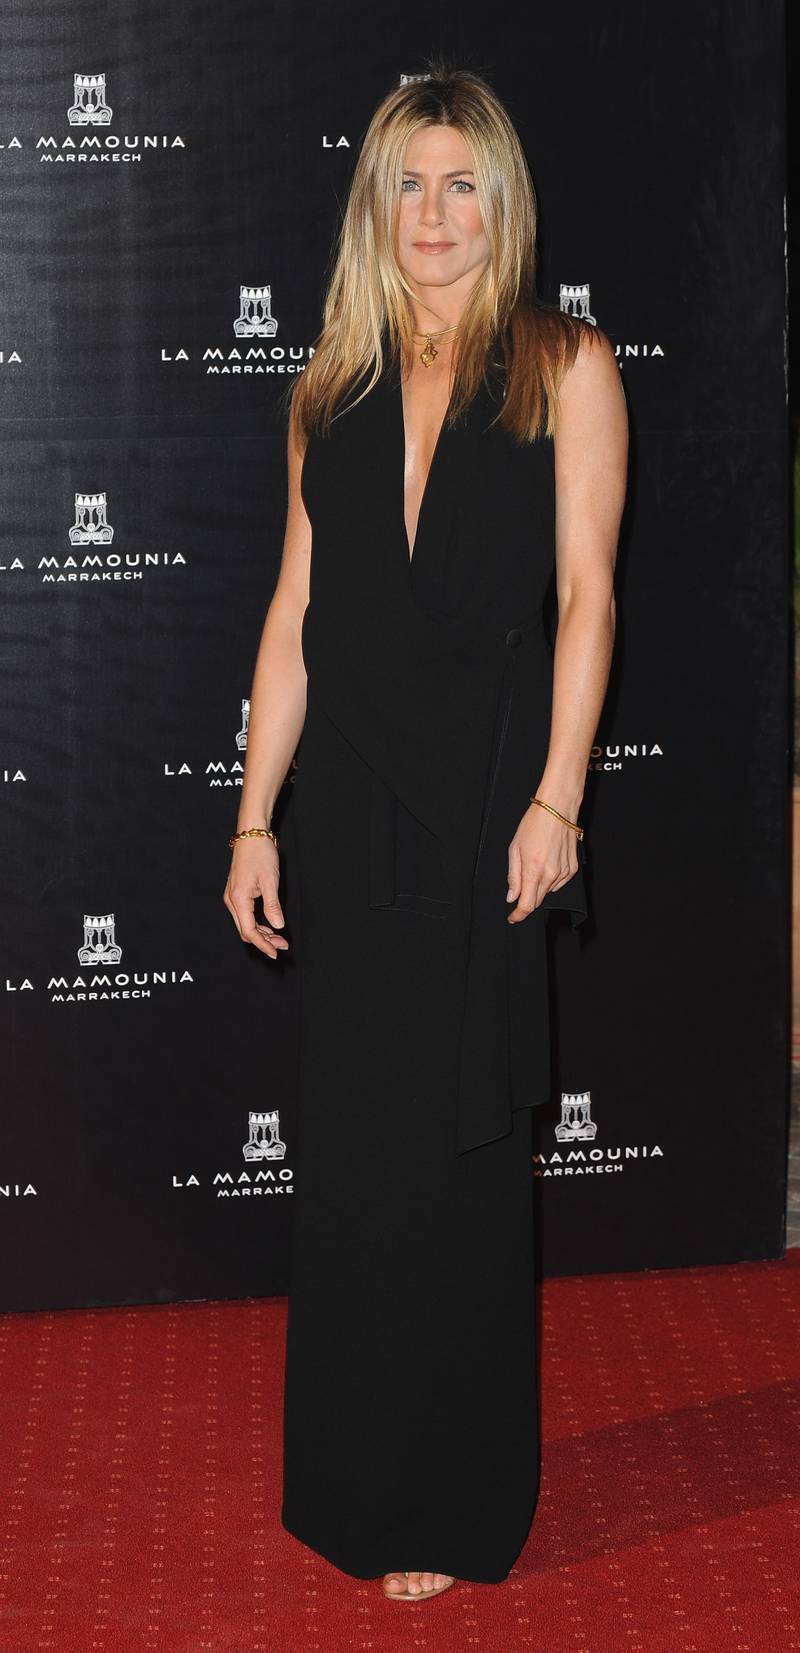 MARRAKECH, MOROCCO - NOVEMBER 26:  Actress Jennifer Aniston attends the Mamounia hotel inauguration on November 26, 2009 in Marrakech, Morocco.  (Photo by Pascal Le Segretain/Getty Images)